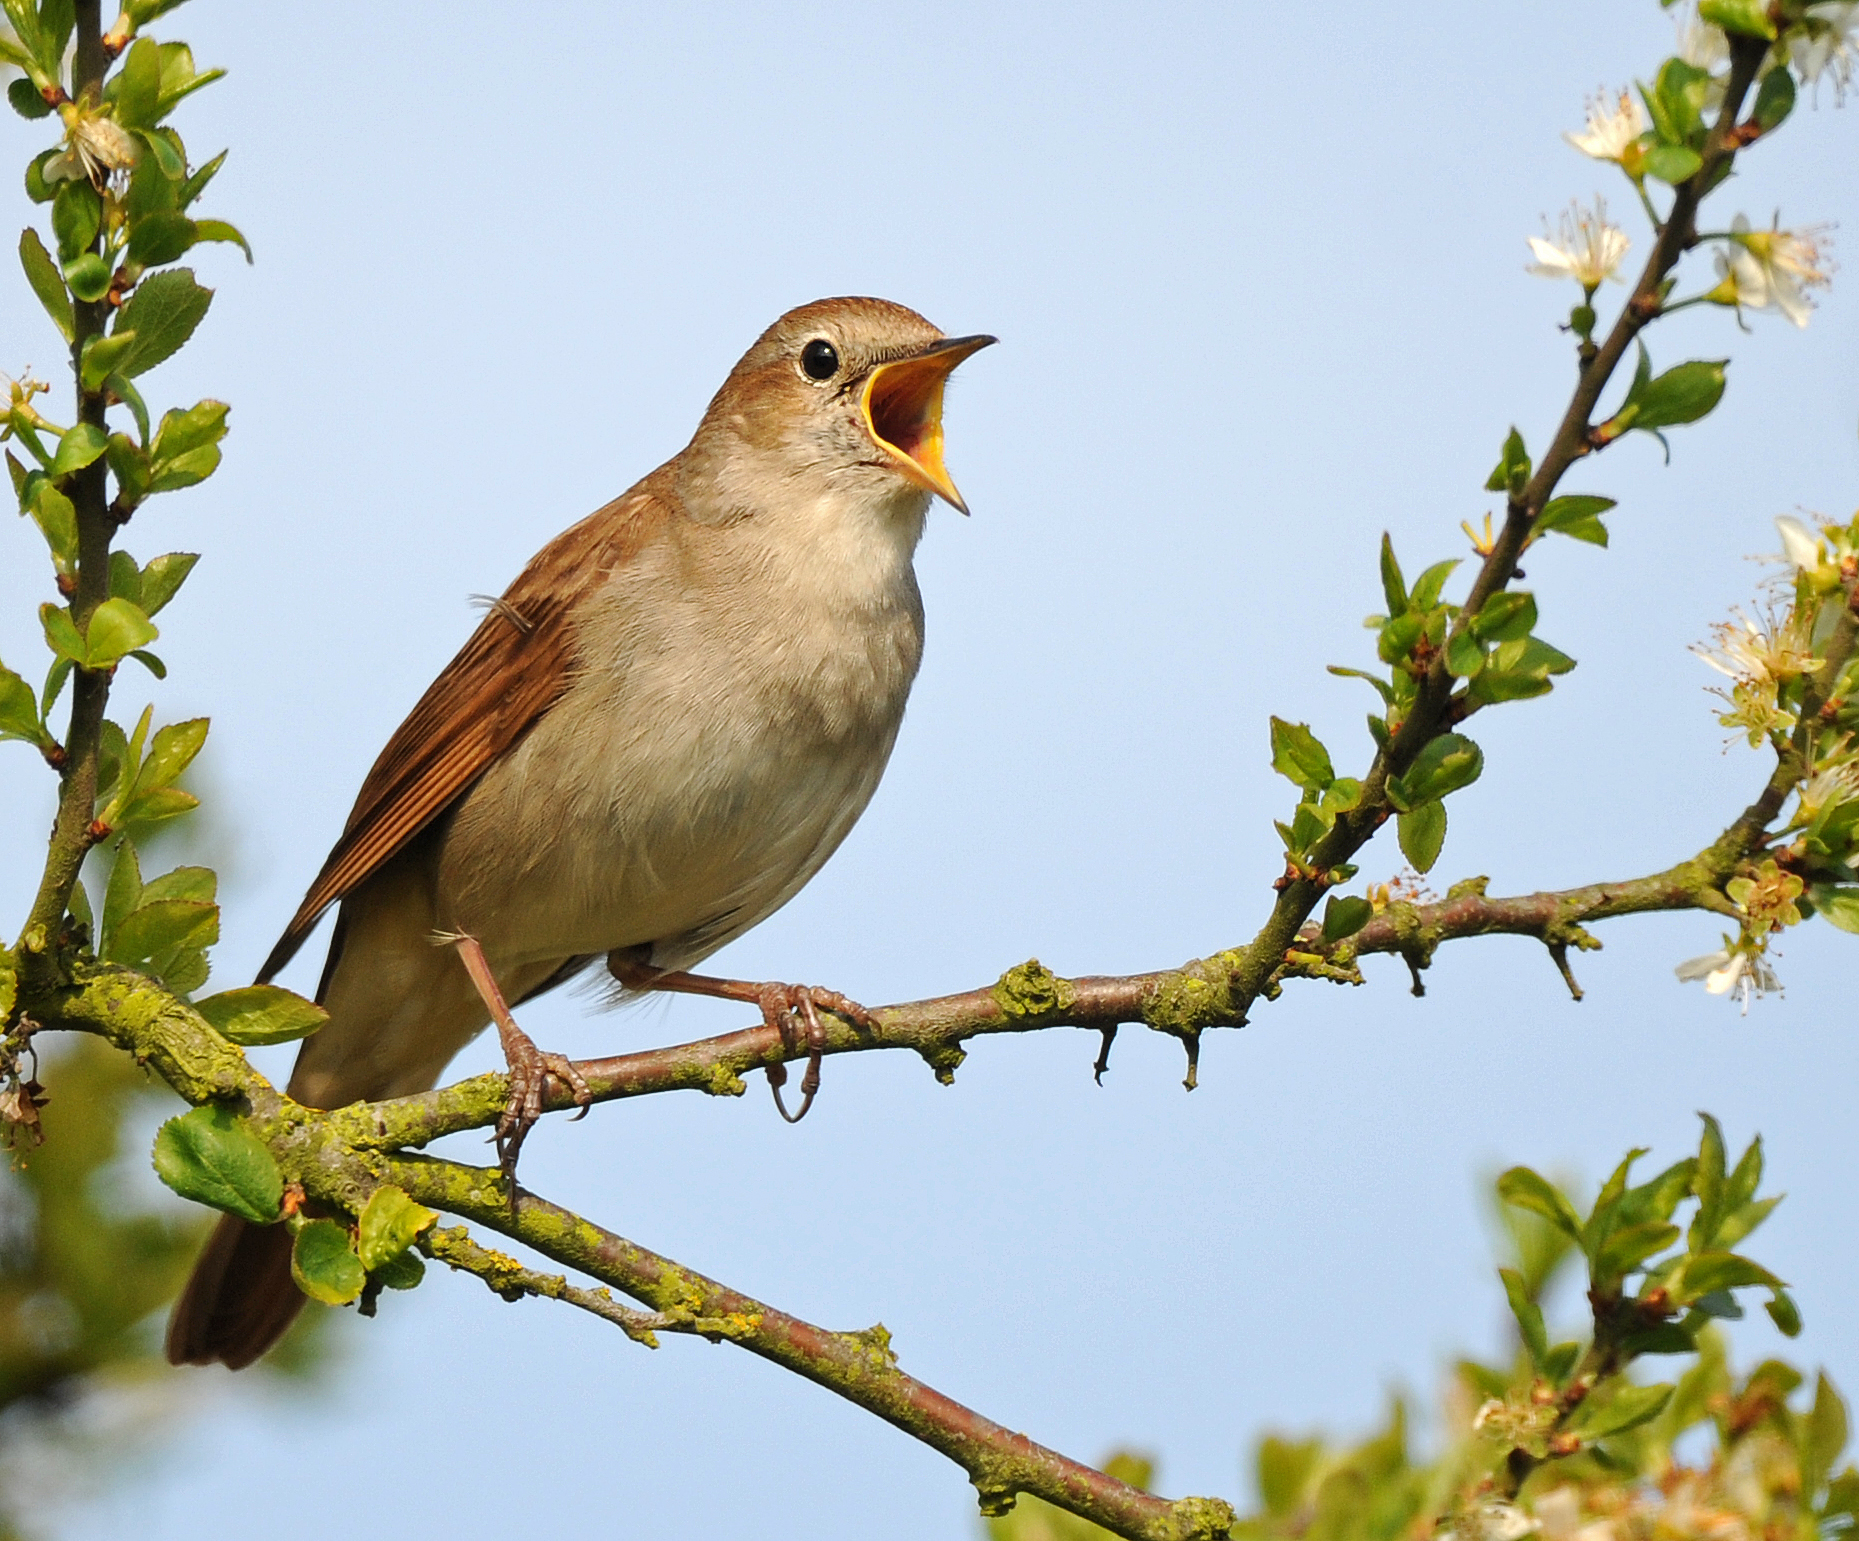 Old Time Car Wallpaper Hd Species Of The Week Nightingale Minsmere Minsmere